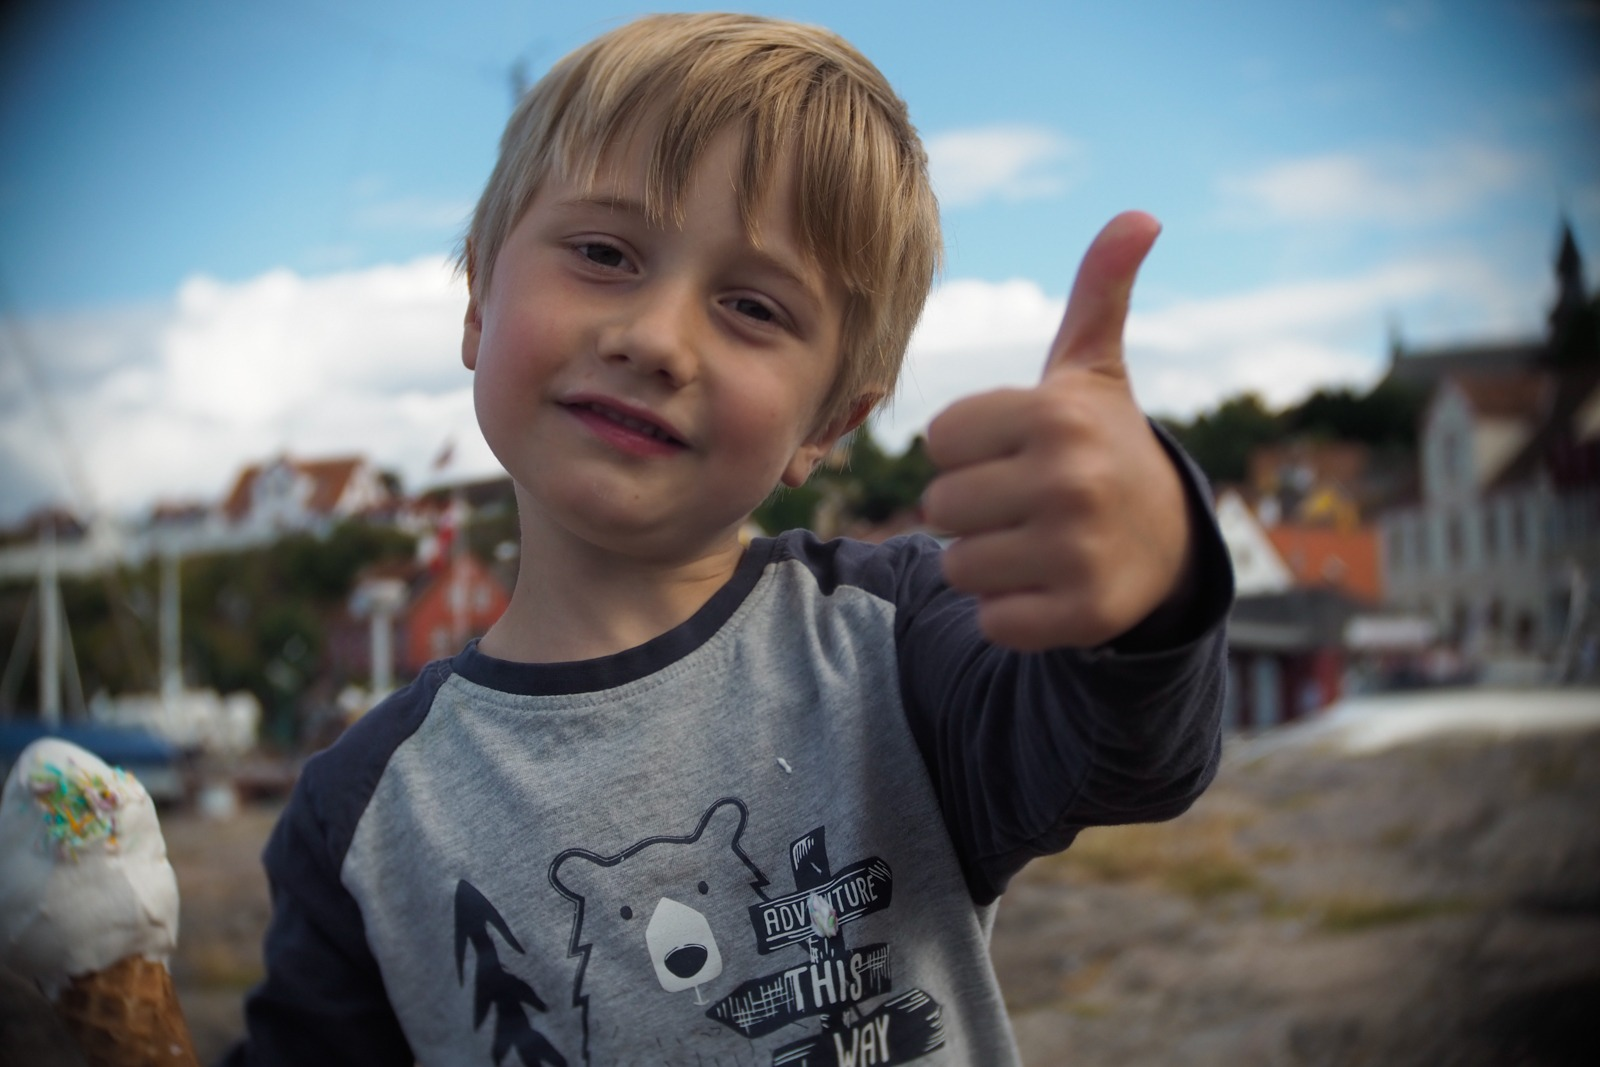 Felix says thumbs up, shot with an SLR Magic Toy Lens